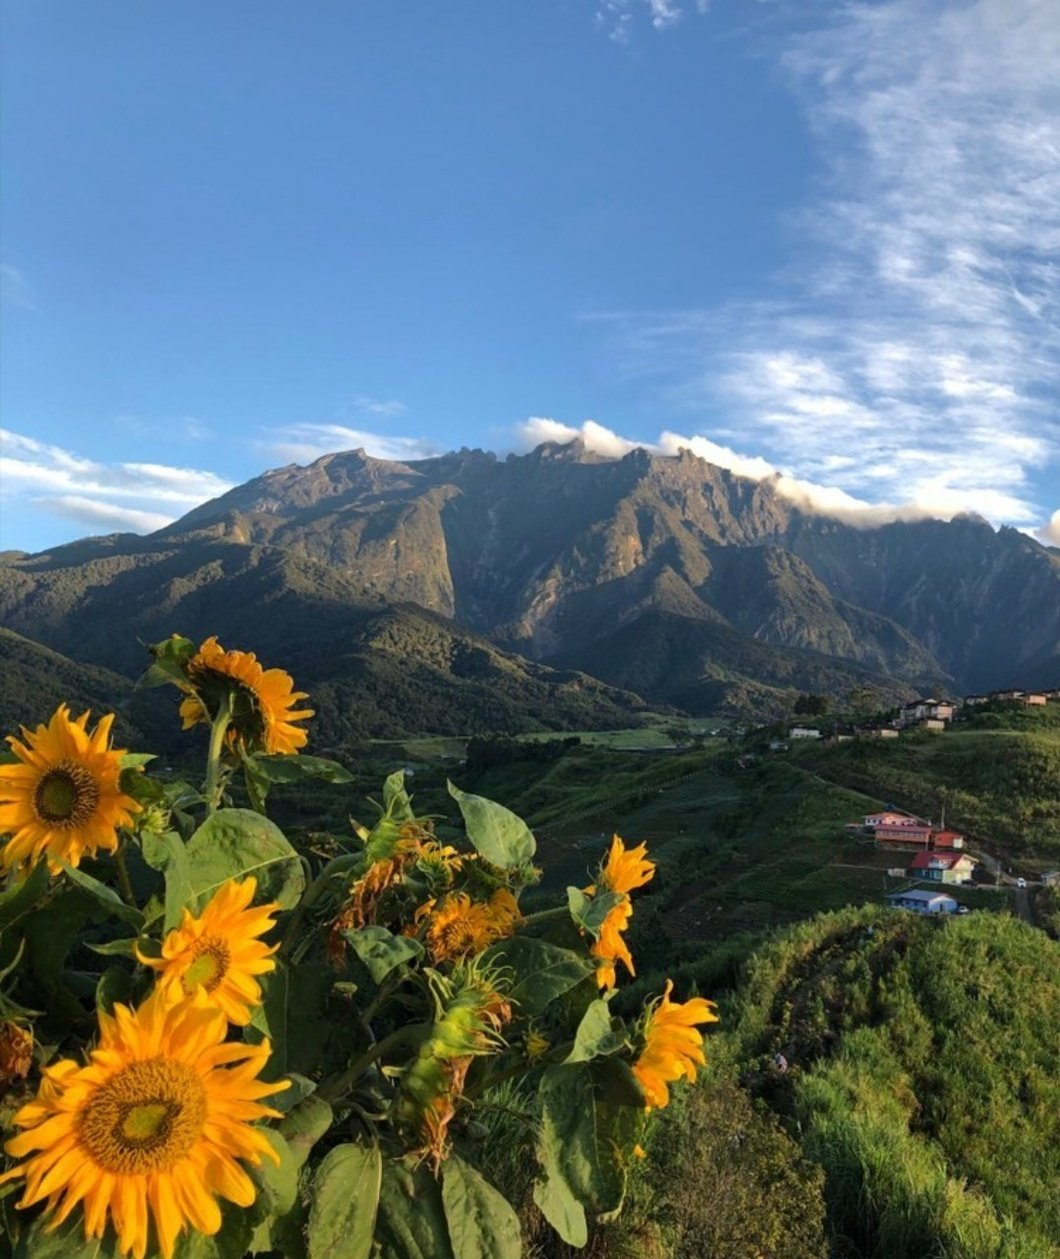 Photo: Sosodikon Hill offer some spectacular views of Mount Kinabalu in the morning light. Photo credit @xchantelleyst